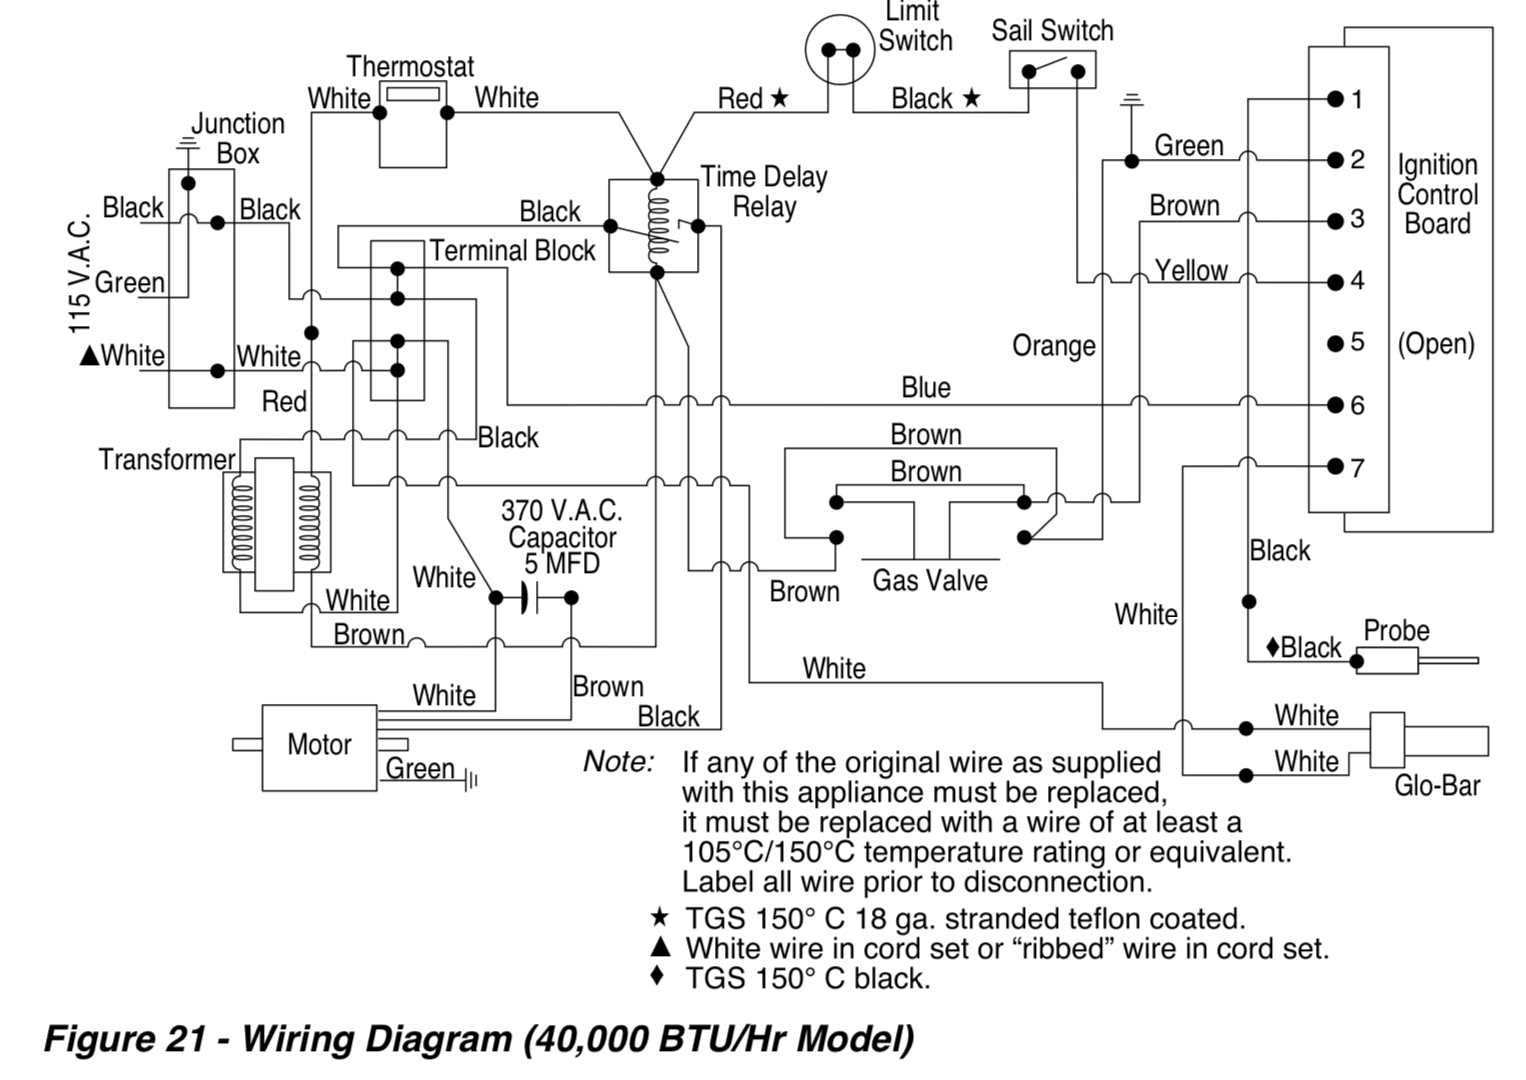 5 wire thermostat diagram duct smoke detector wiring electrical can a common c be